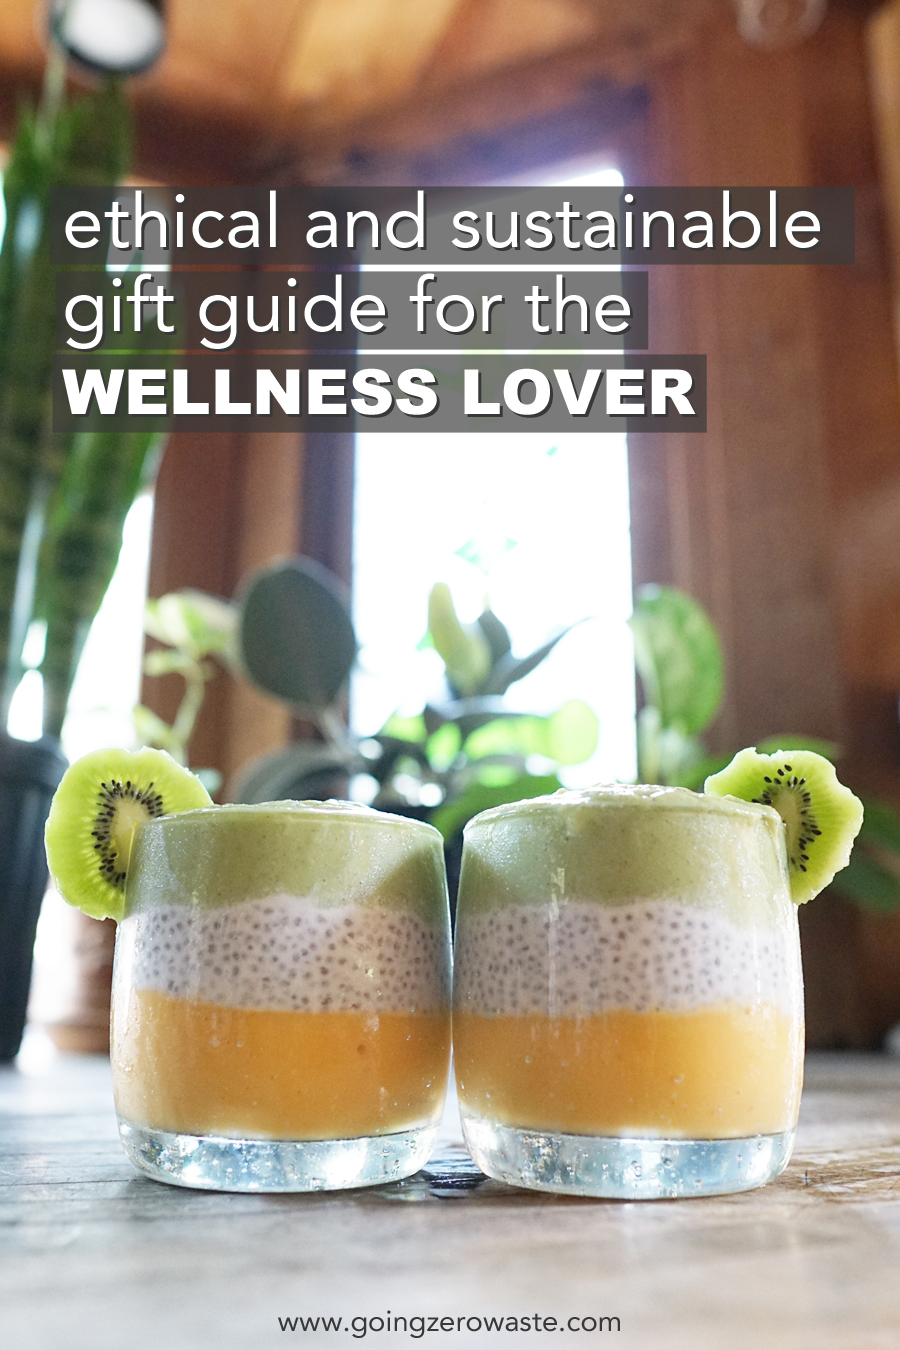 Ethical and Sustainable Gift Guide for the Wellness Lover from www.goingzerowaste.com #wellness #giftguide #ethical #sustainable #zerowaste